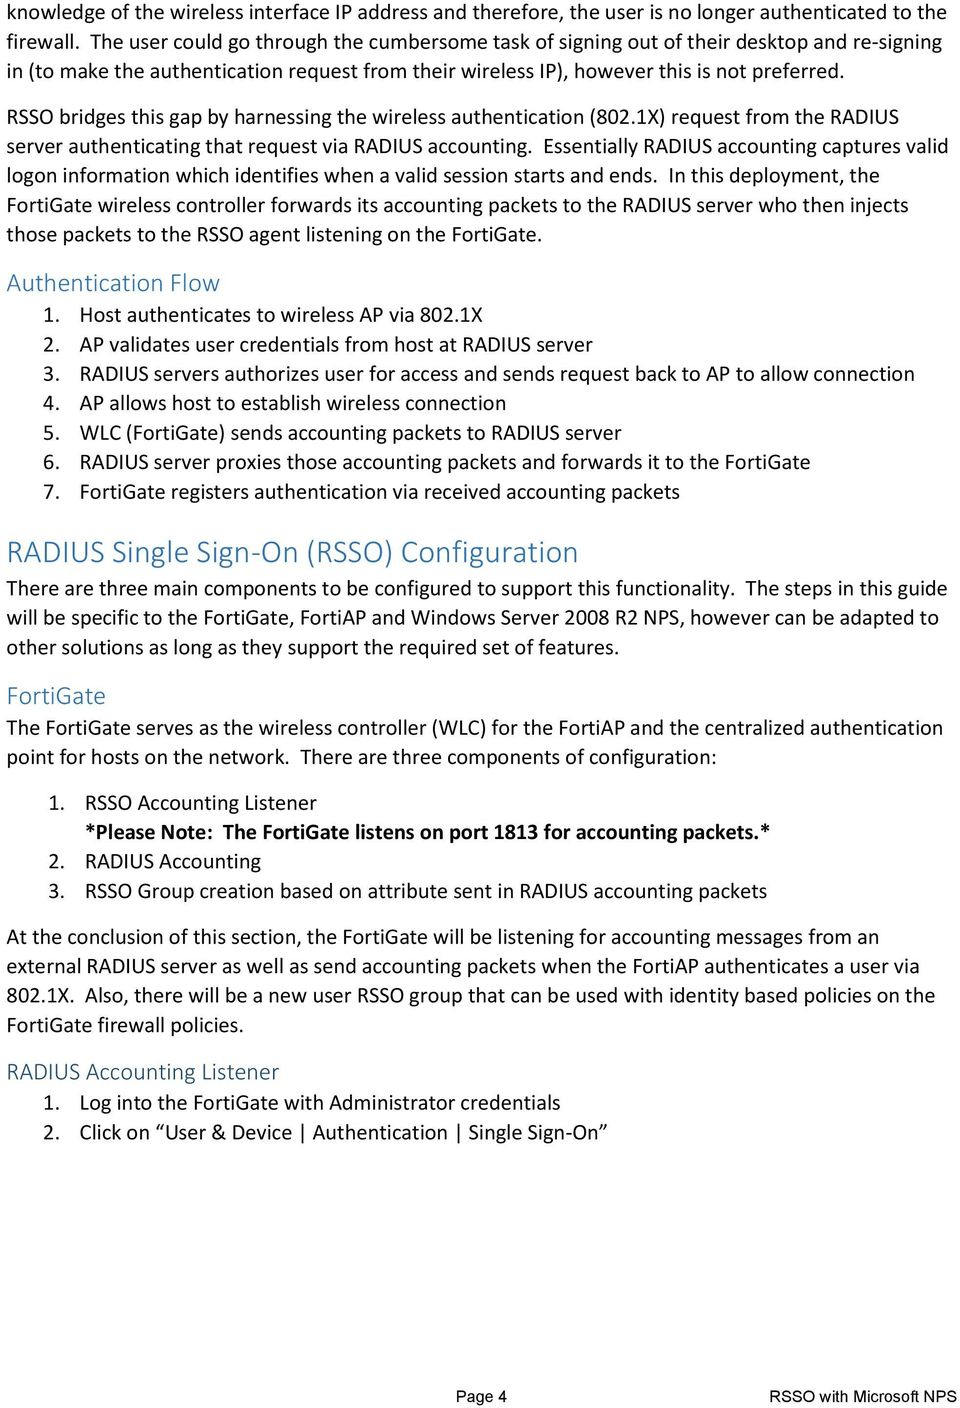 RSSO bridges this gap by harnessing the wireless authentication (802.1X) request from the RADIUS server authenticating that request via RADIUS accounting.